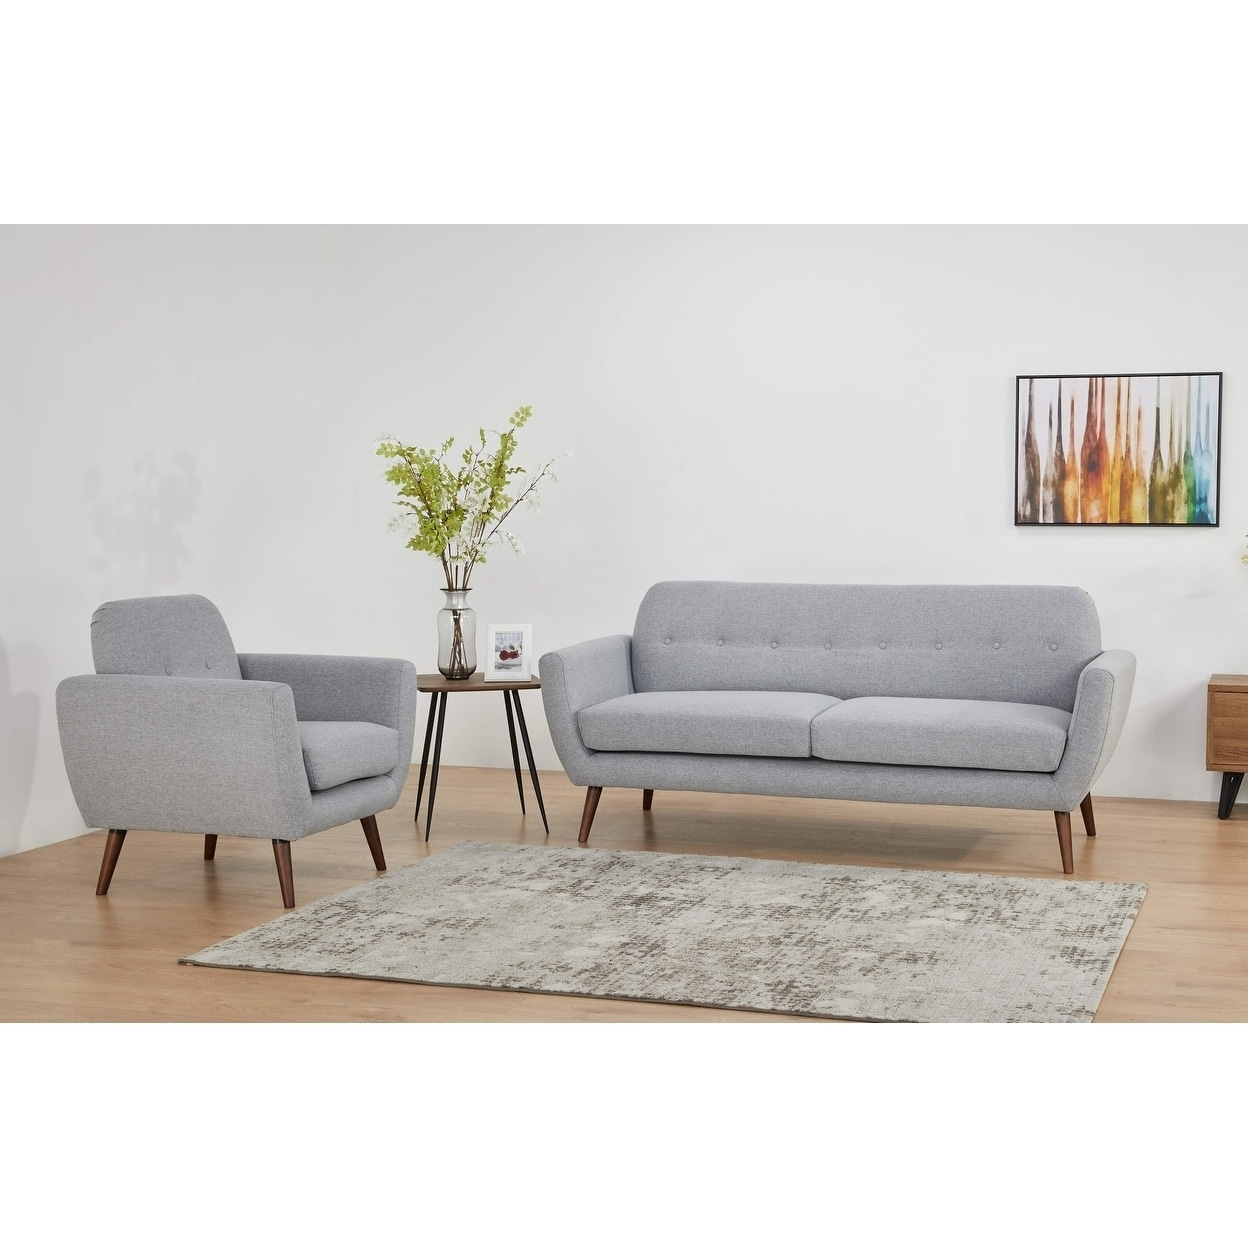 Artdeco Home Vegas sofa set (Sofa & Chair)